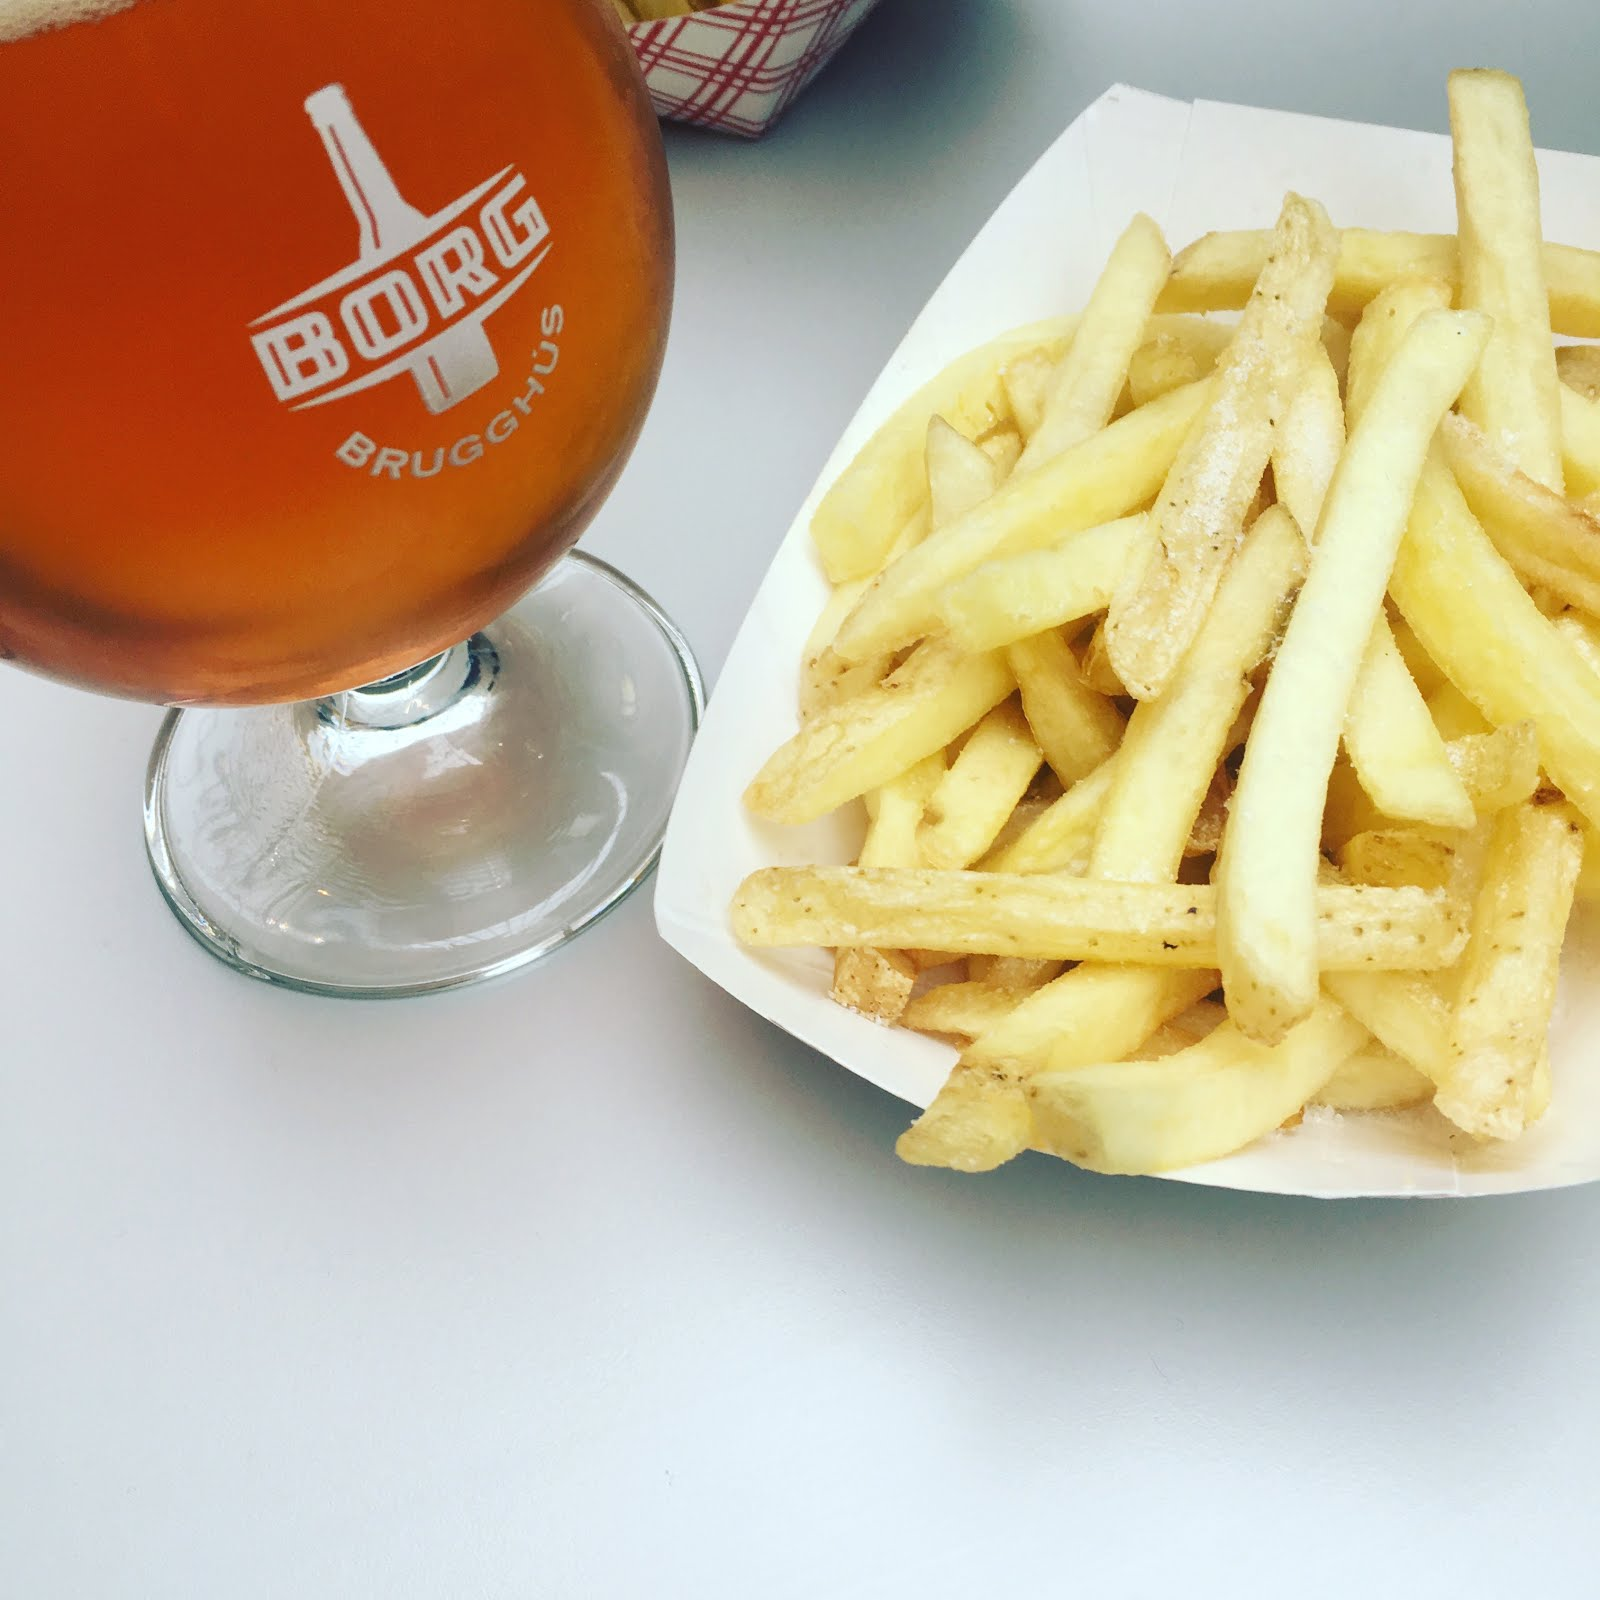 French fries and beer at the airport.